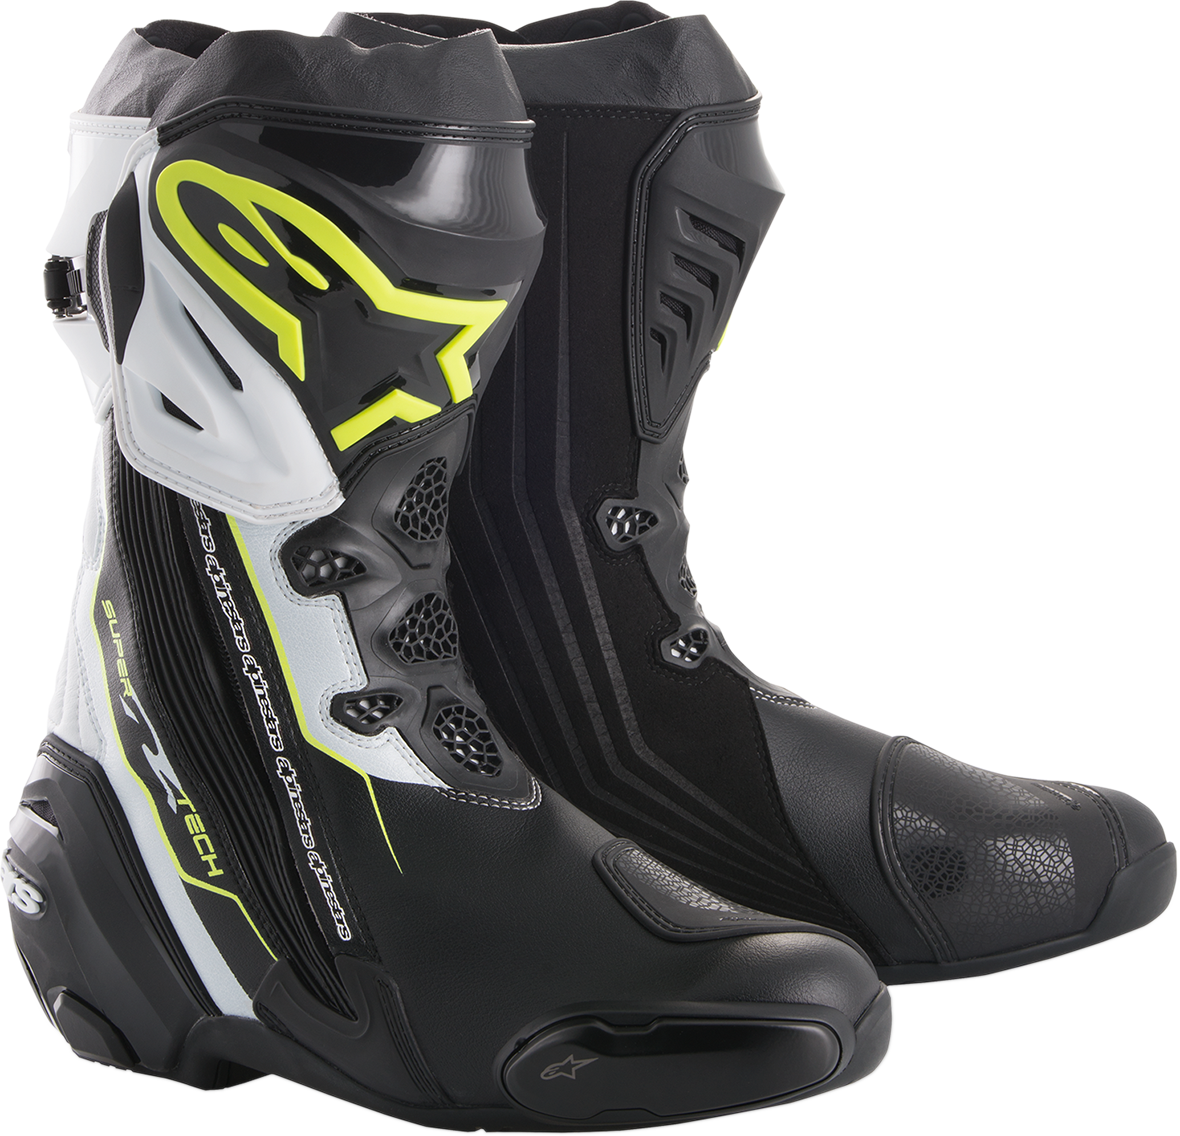 Alpinestars Mens Supertech R Textile Black White Yellow Motorcycle Racing Boots